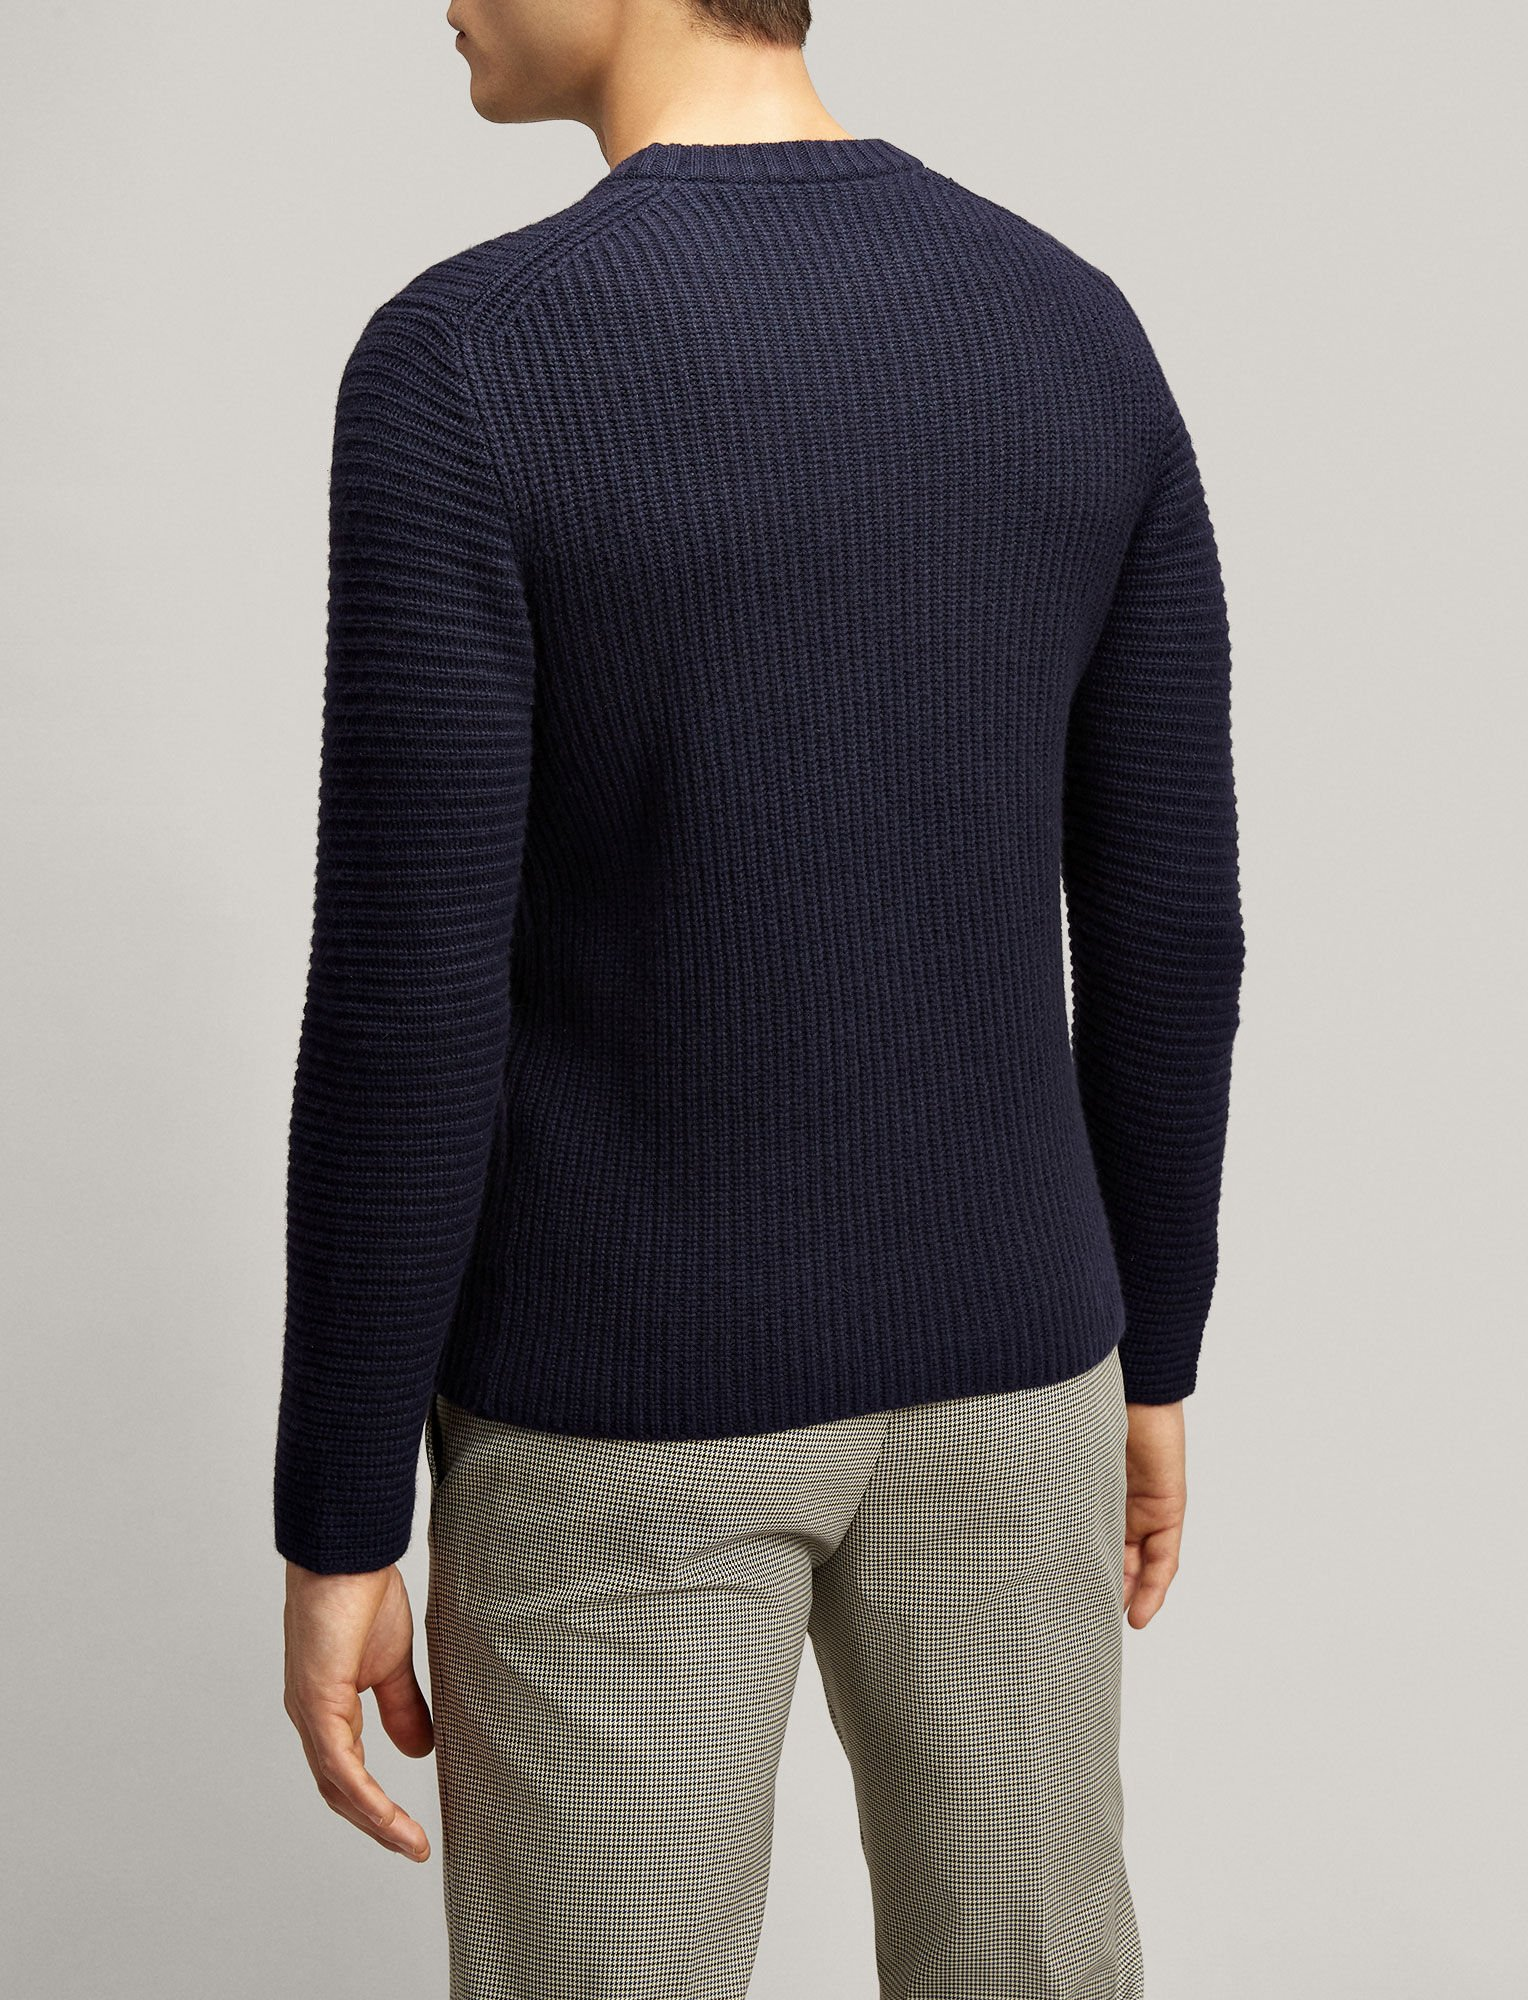 Joseph, Cardigan Cashmere Sweater, in NAVY